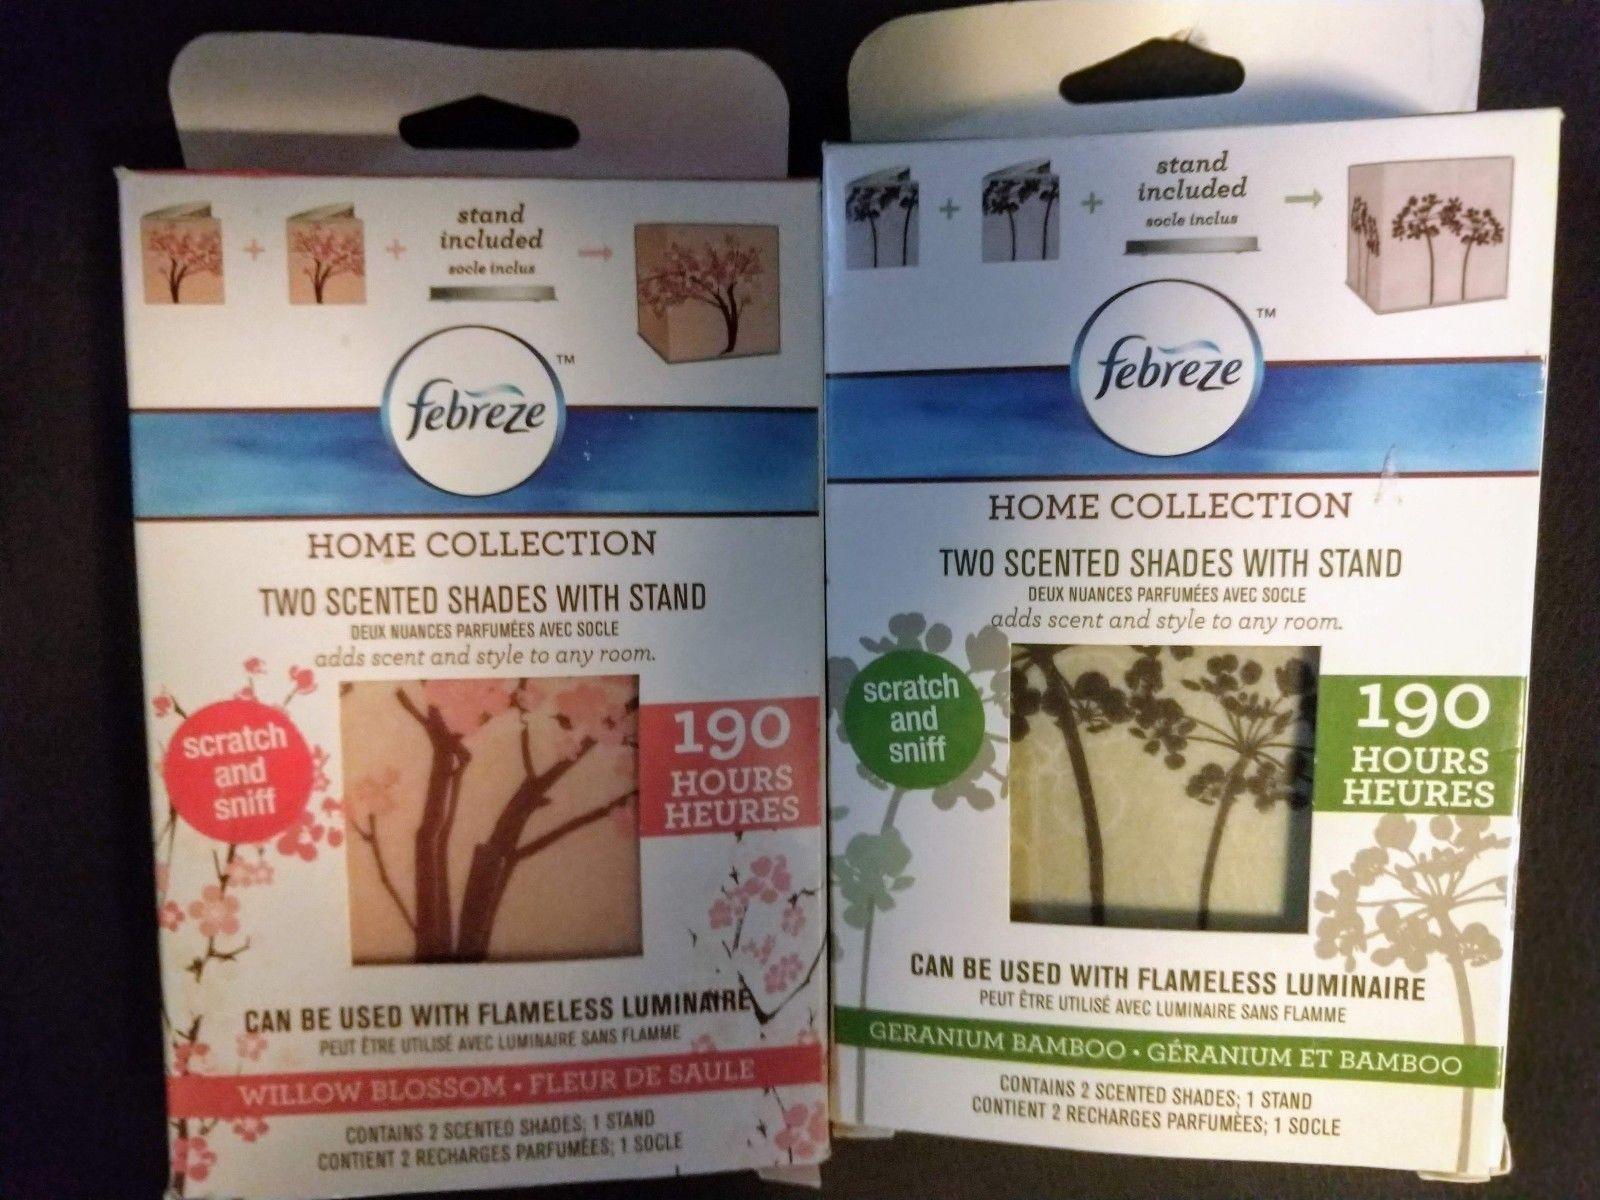 NEW Febreze Scented Shades Stand Flameless and 50 similar items